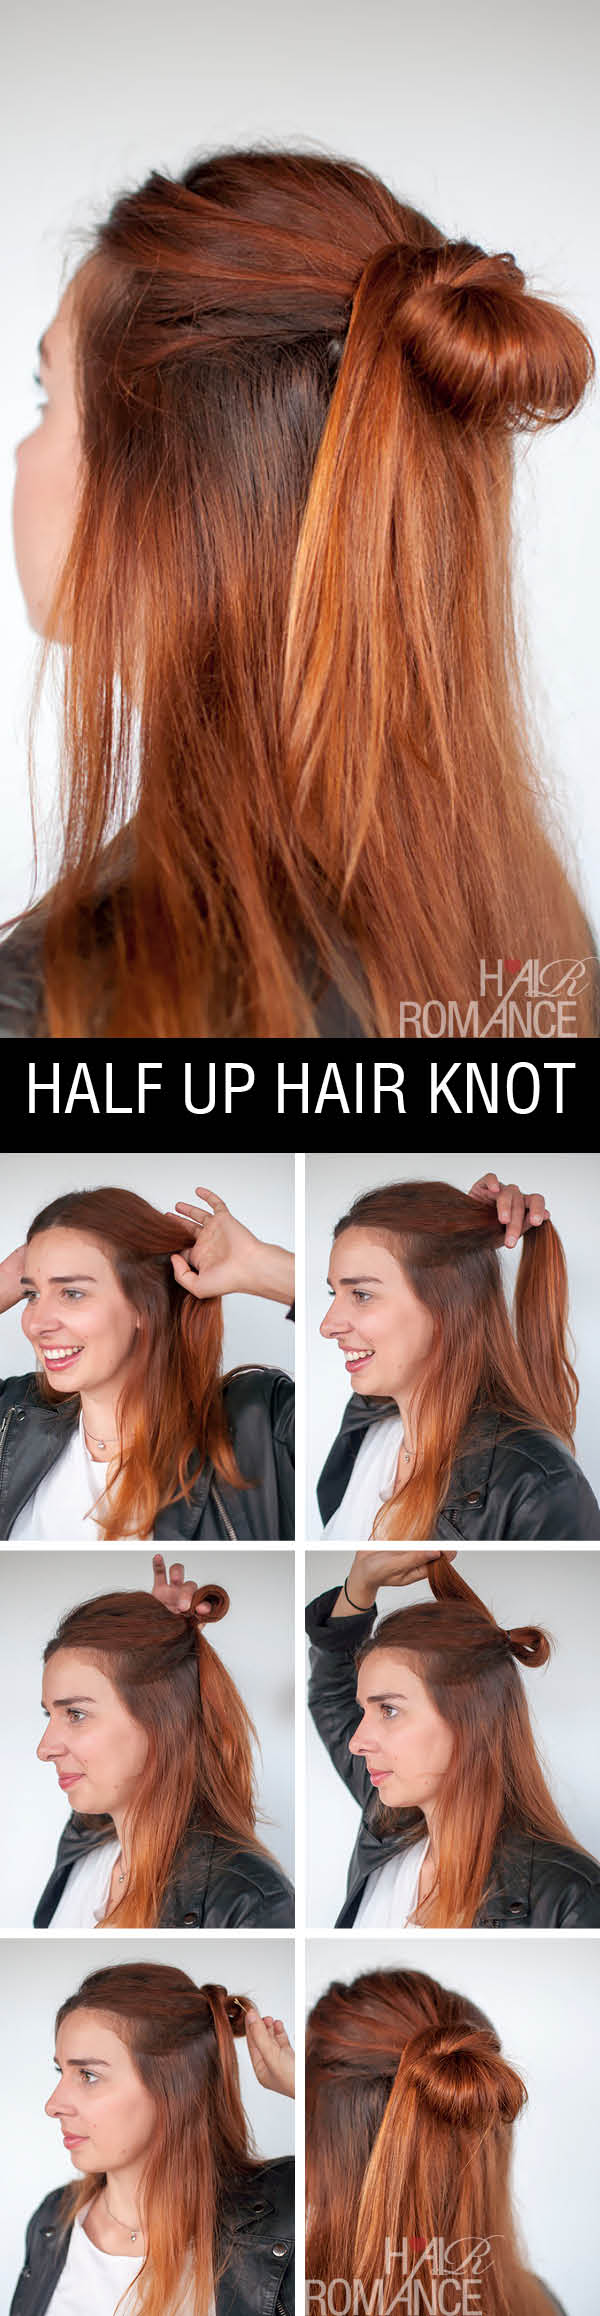 Hair Romance - 90s half up hair knot hairstyle tutorial